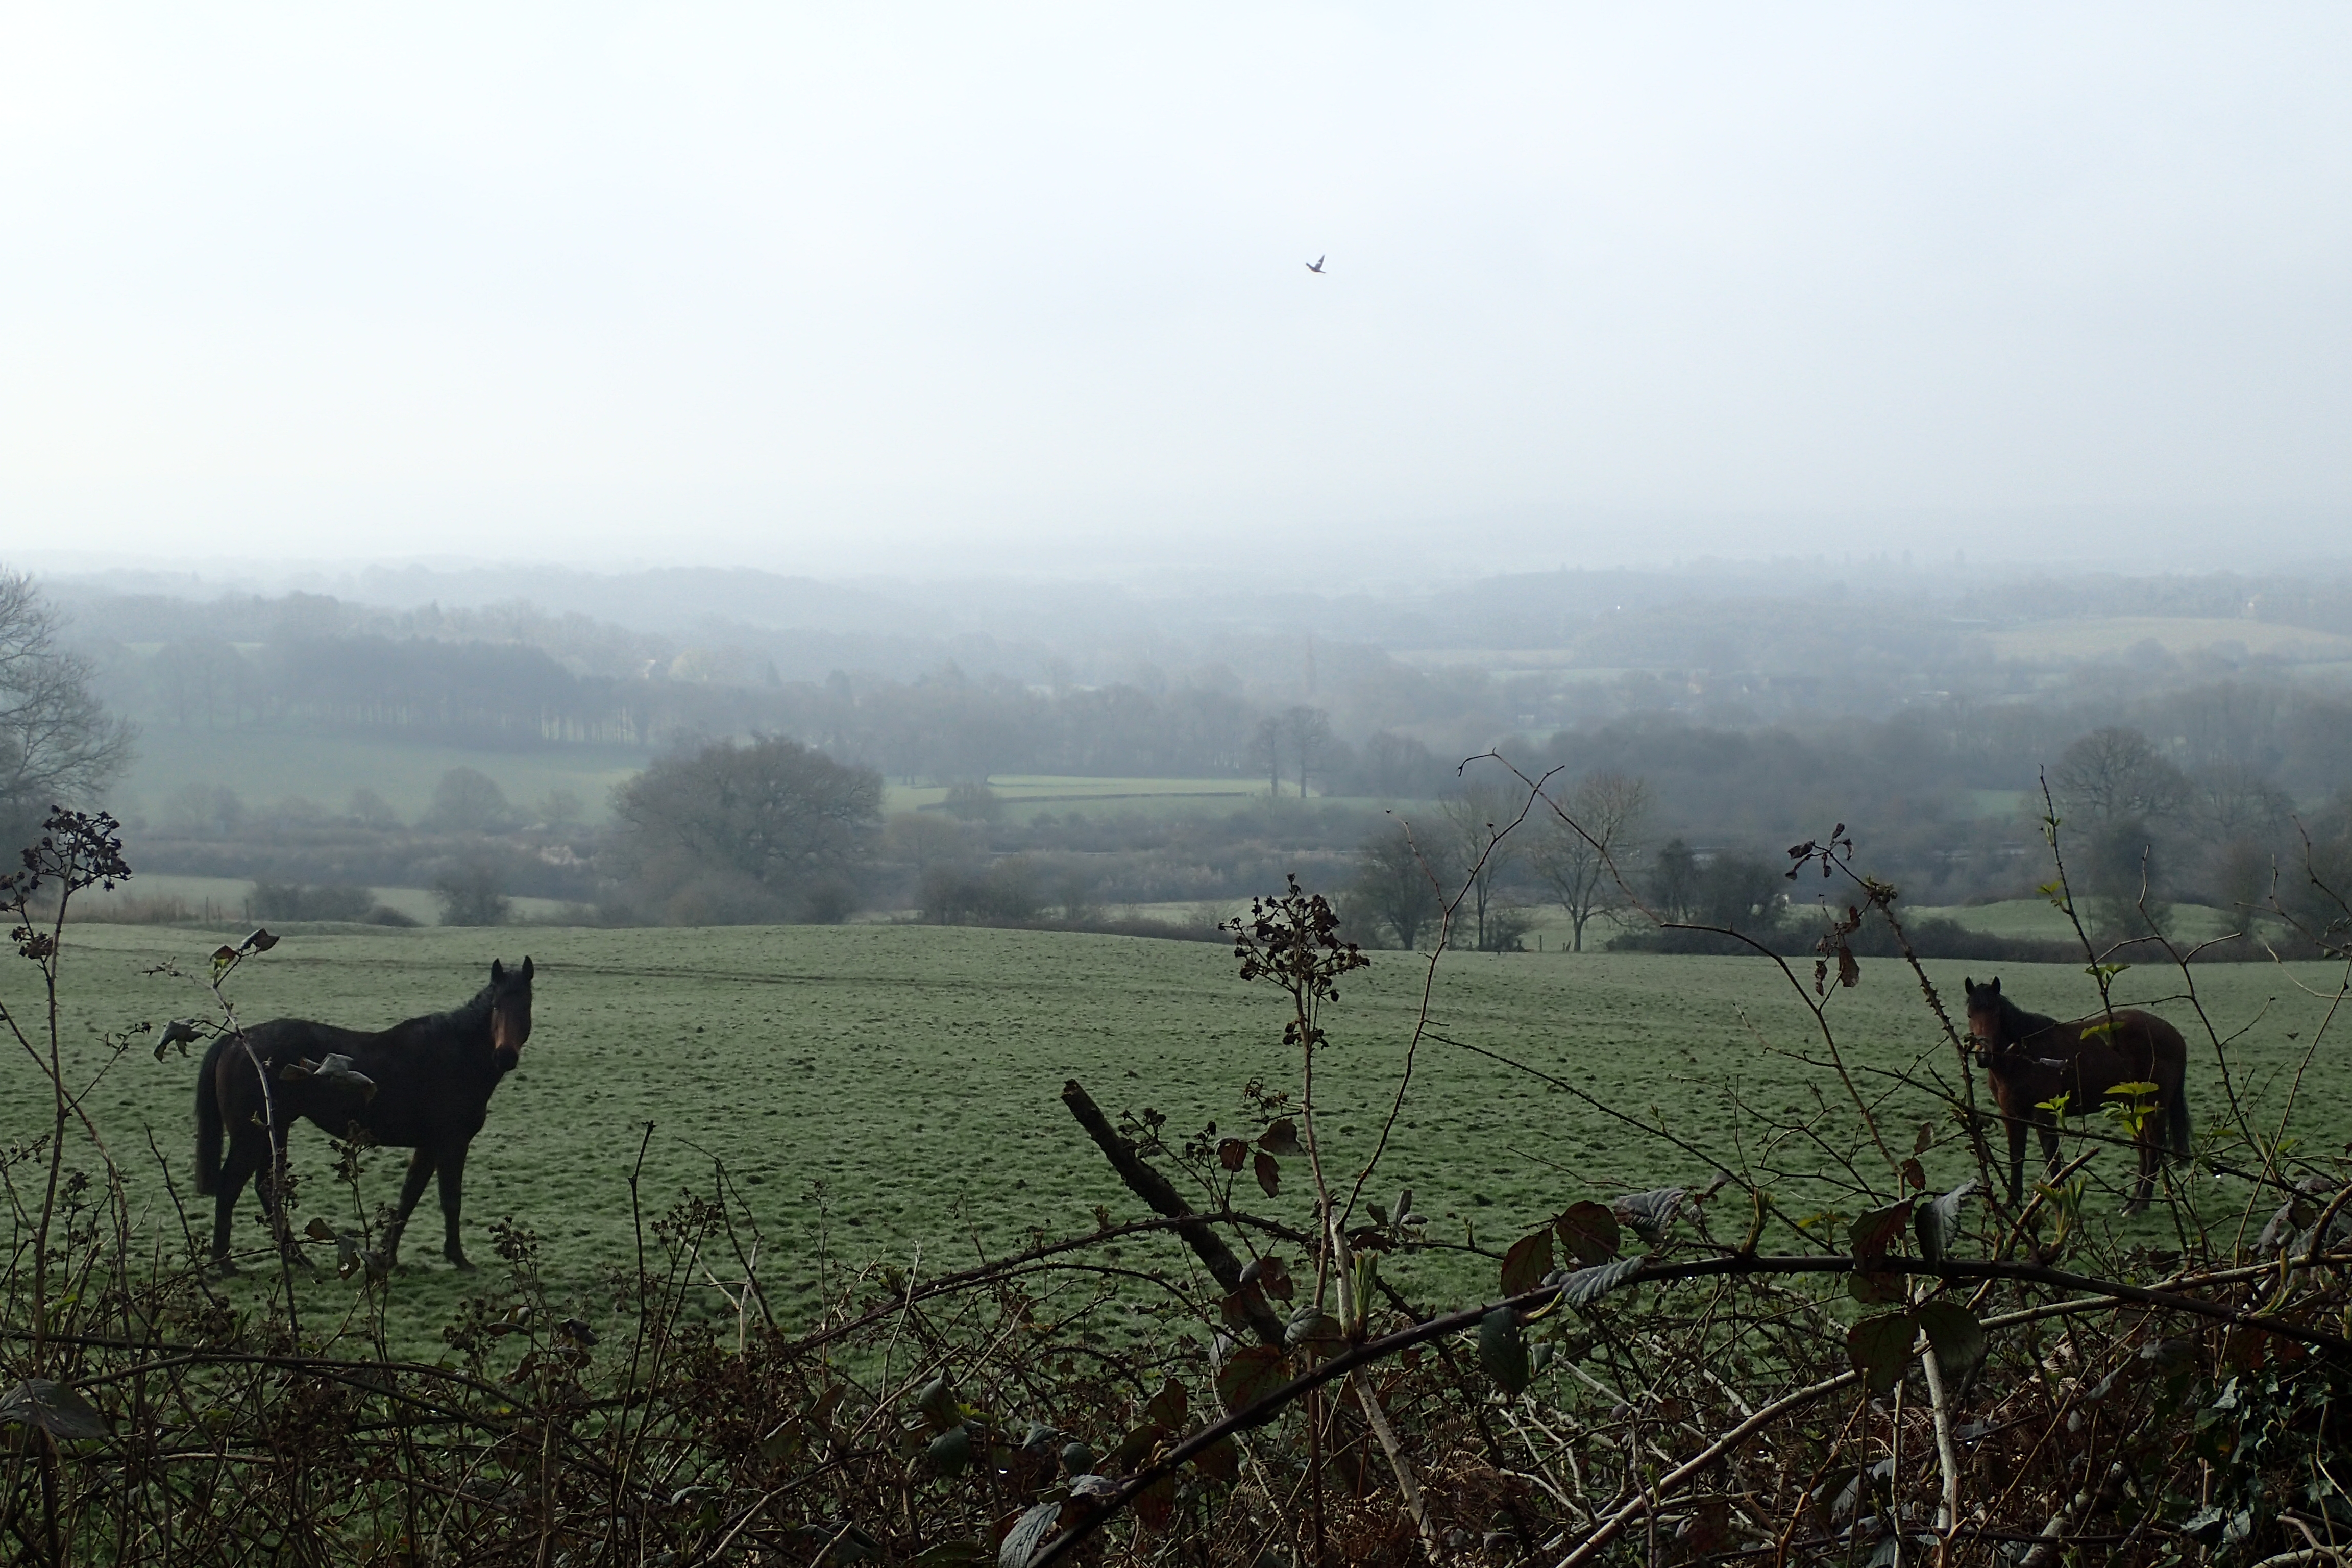 Views from the Greensand Way, just one established trail encountered on my route